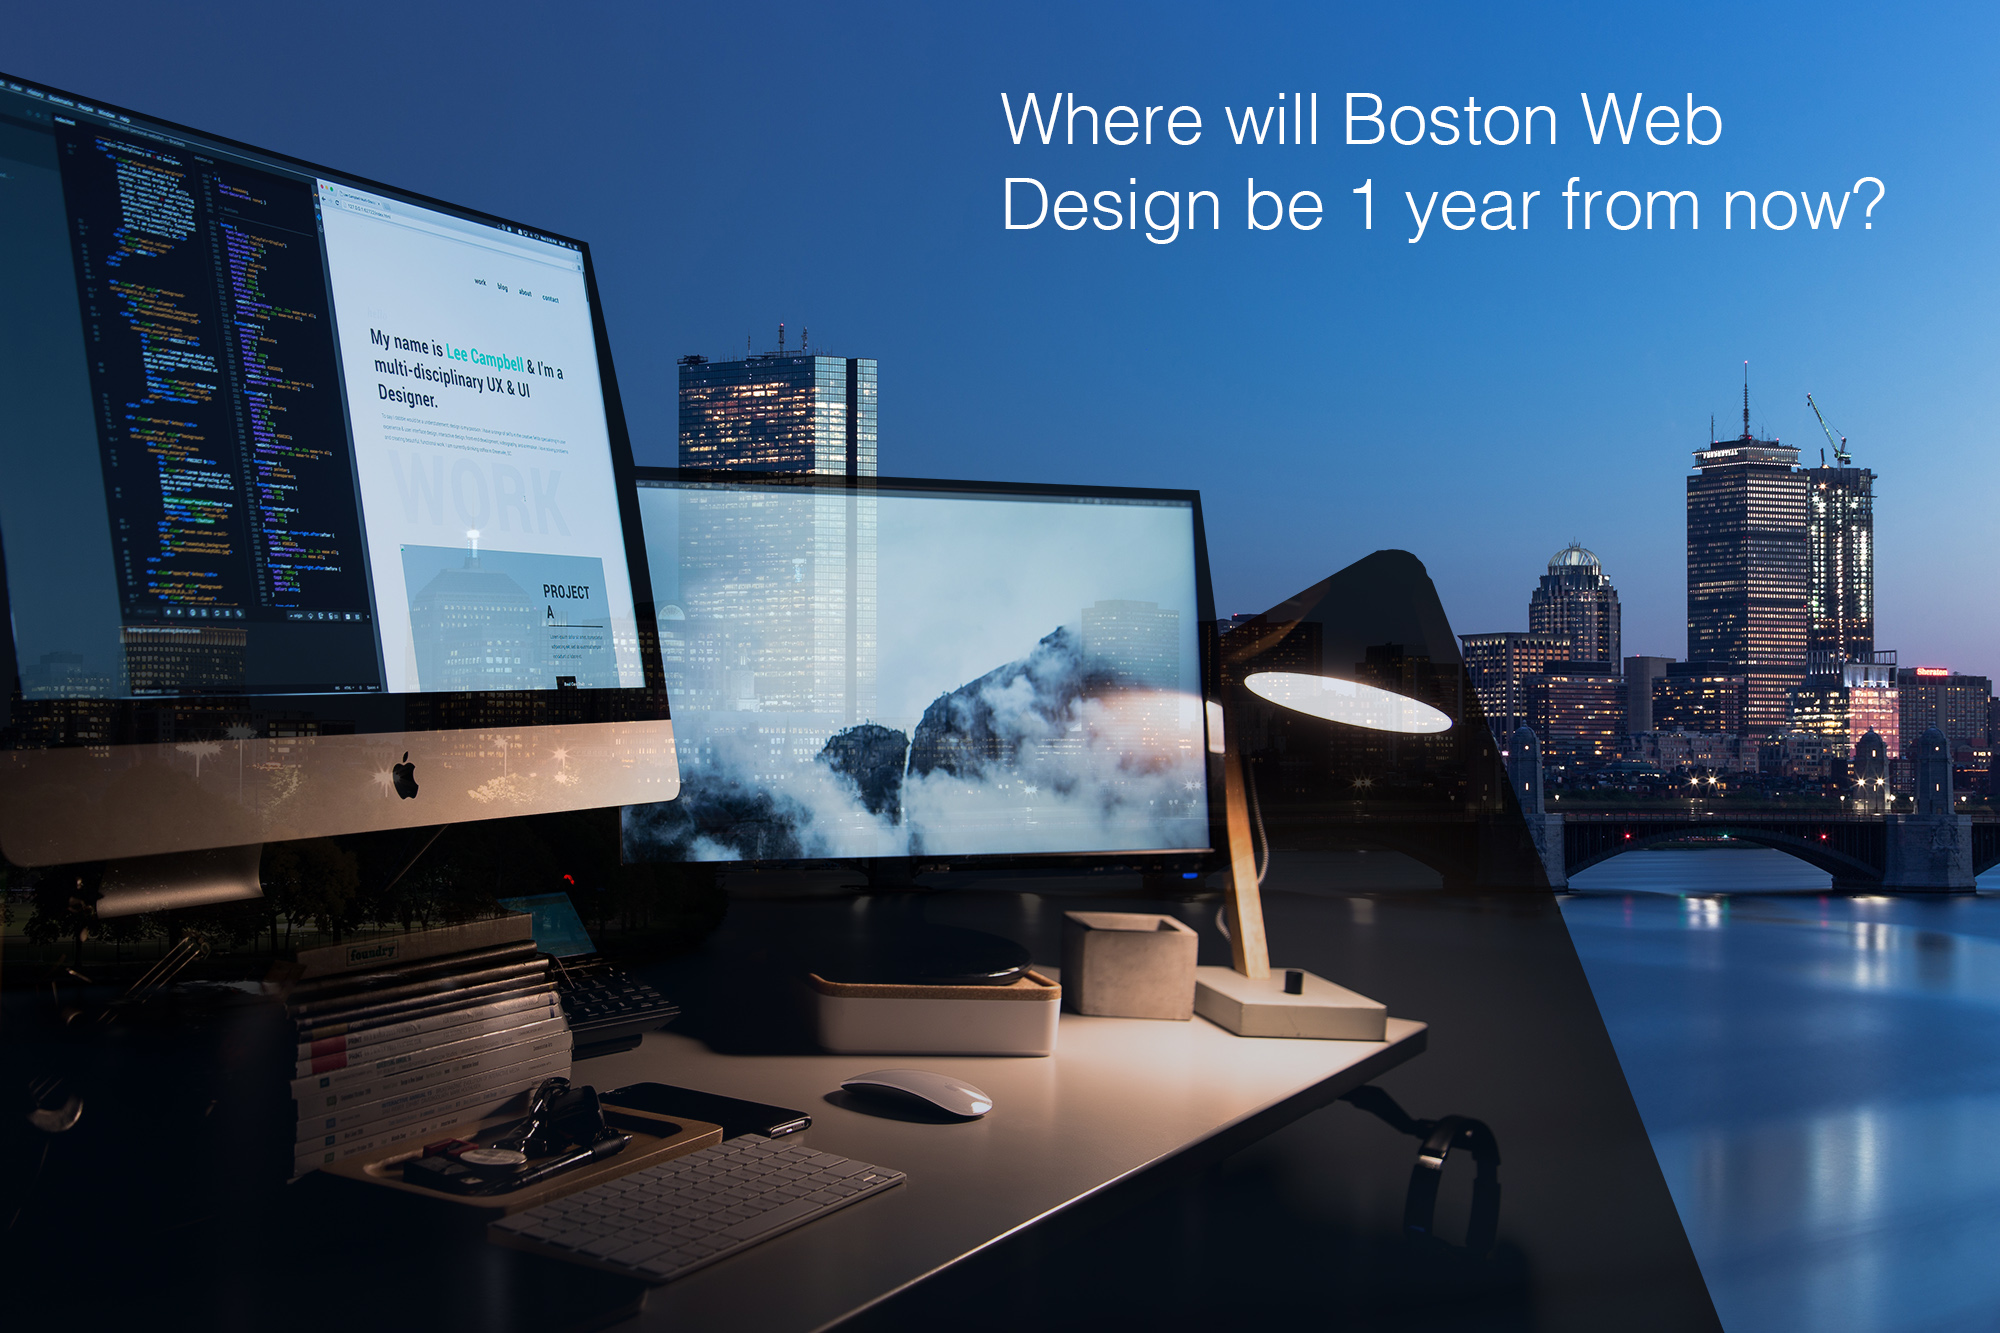 web design - where will boston web design be 1 year from now